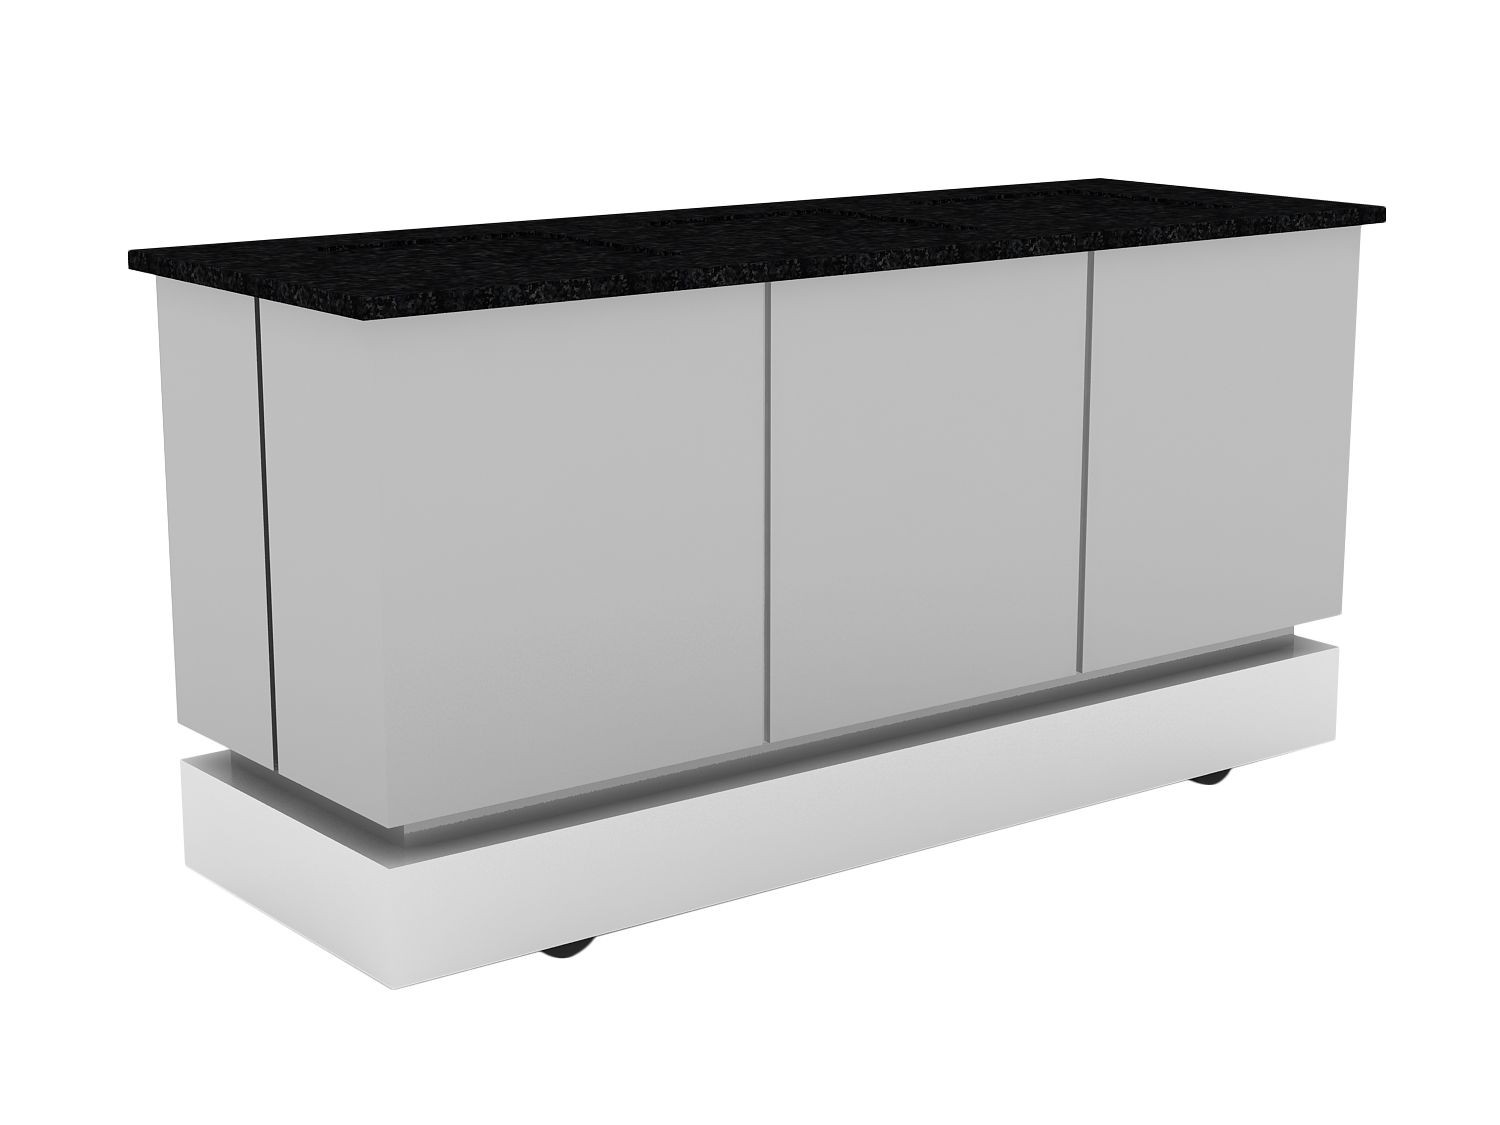 Bon Chef 50169 Contemporary Buffet with Plain Top